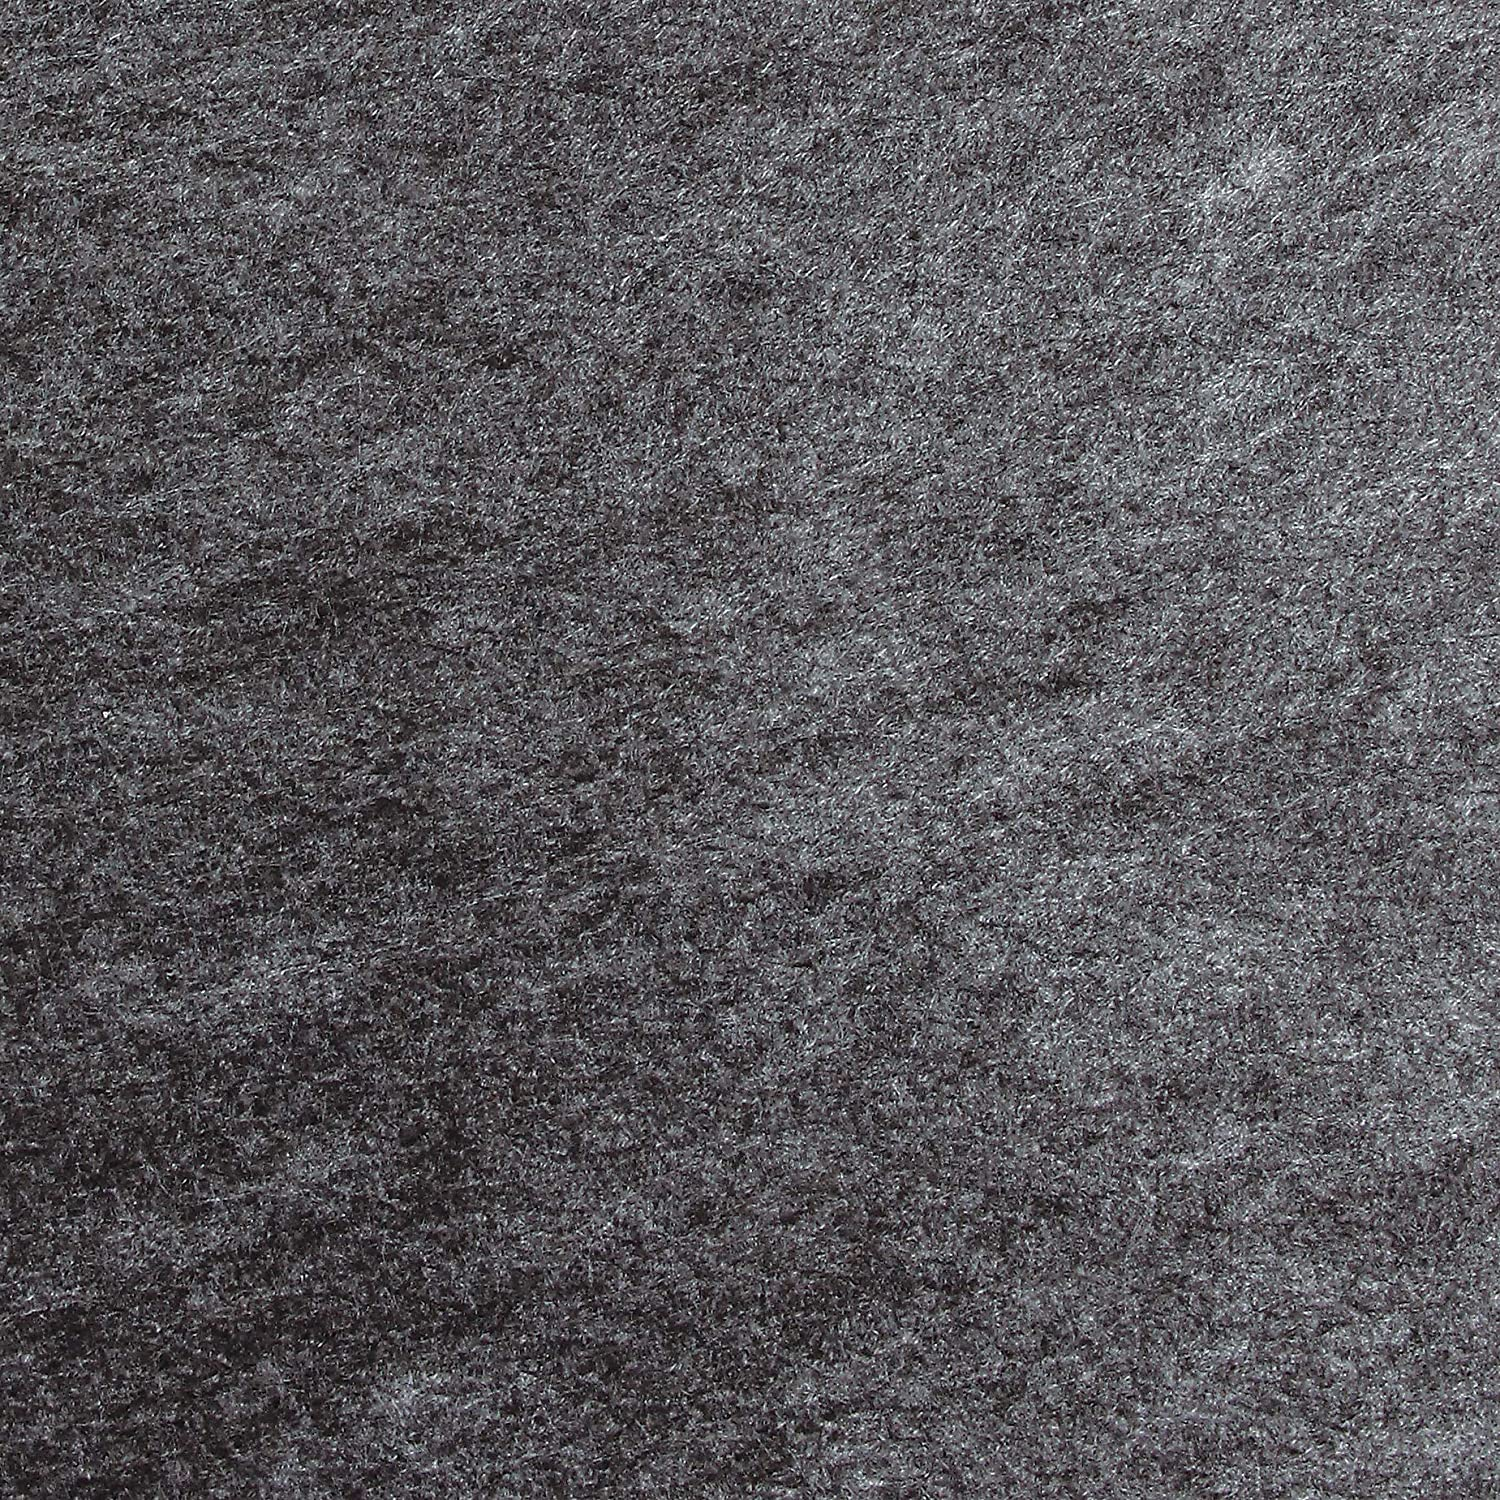 """Absorbent Top Up to 8 Gal 100/' L x 36/"""" W GRP36200-GY New Pig Grippy Floor Mat with Sticky Backing Gray"""